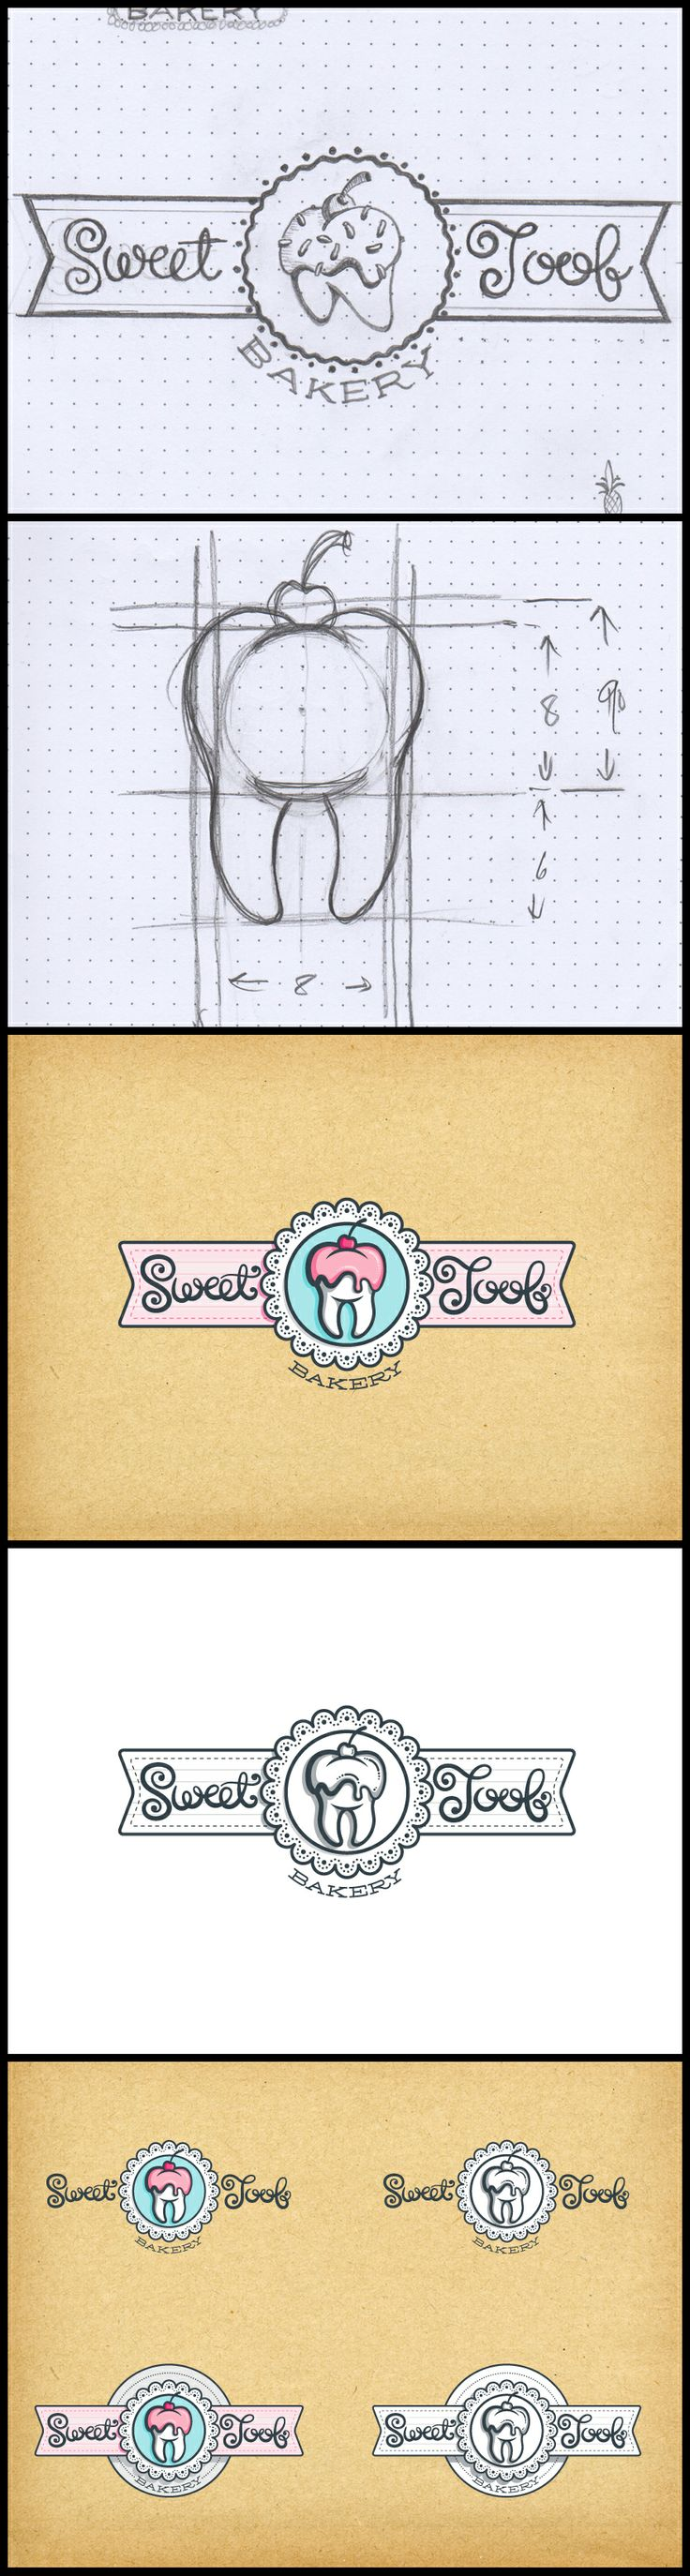 Sweet Toof bakery identity - Option02. Another cool options. Really like this one as well.